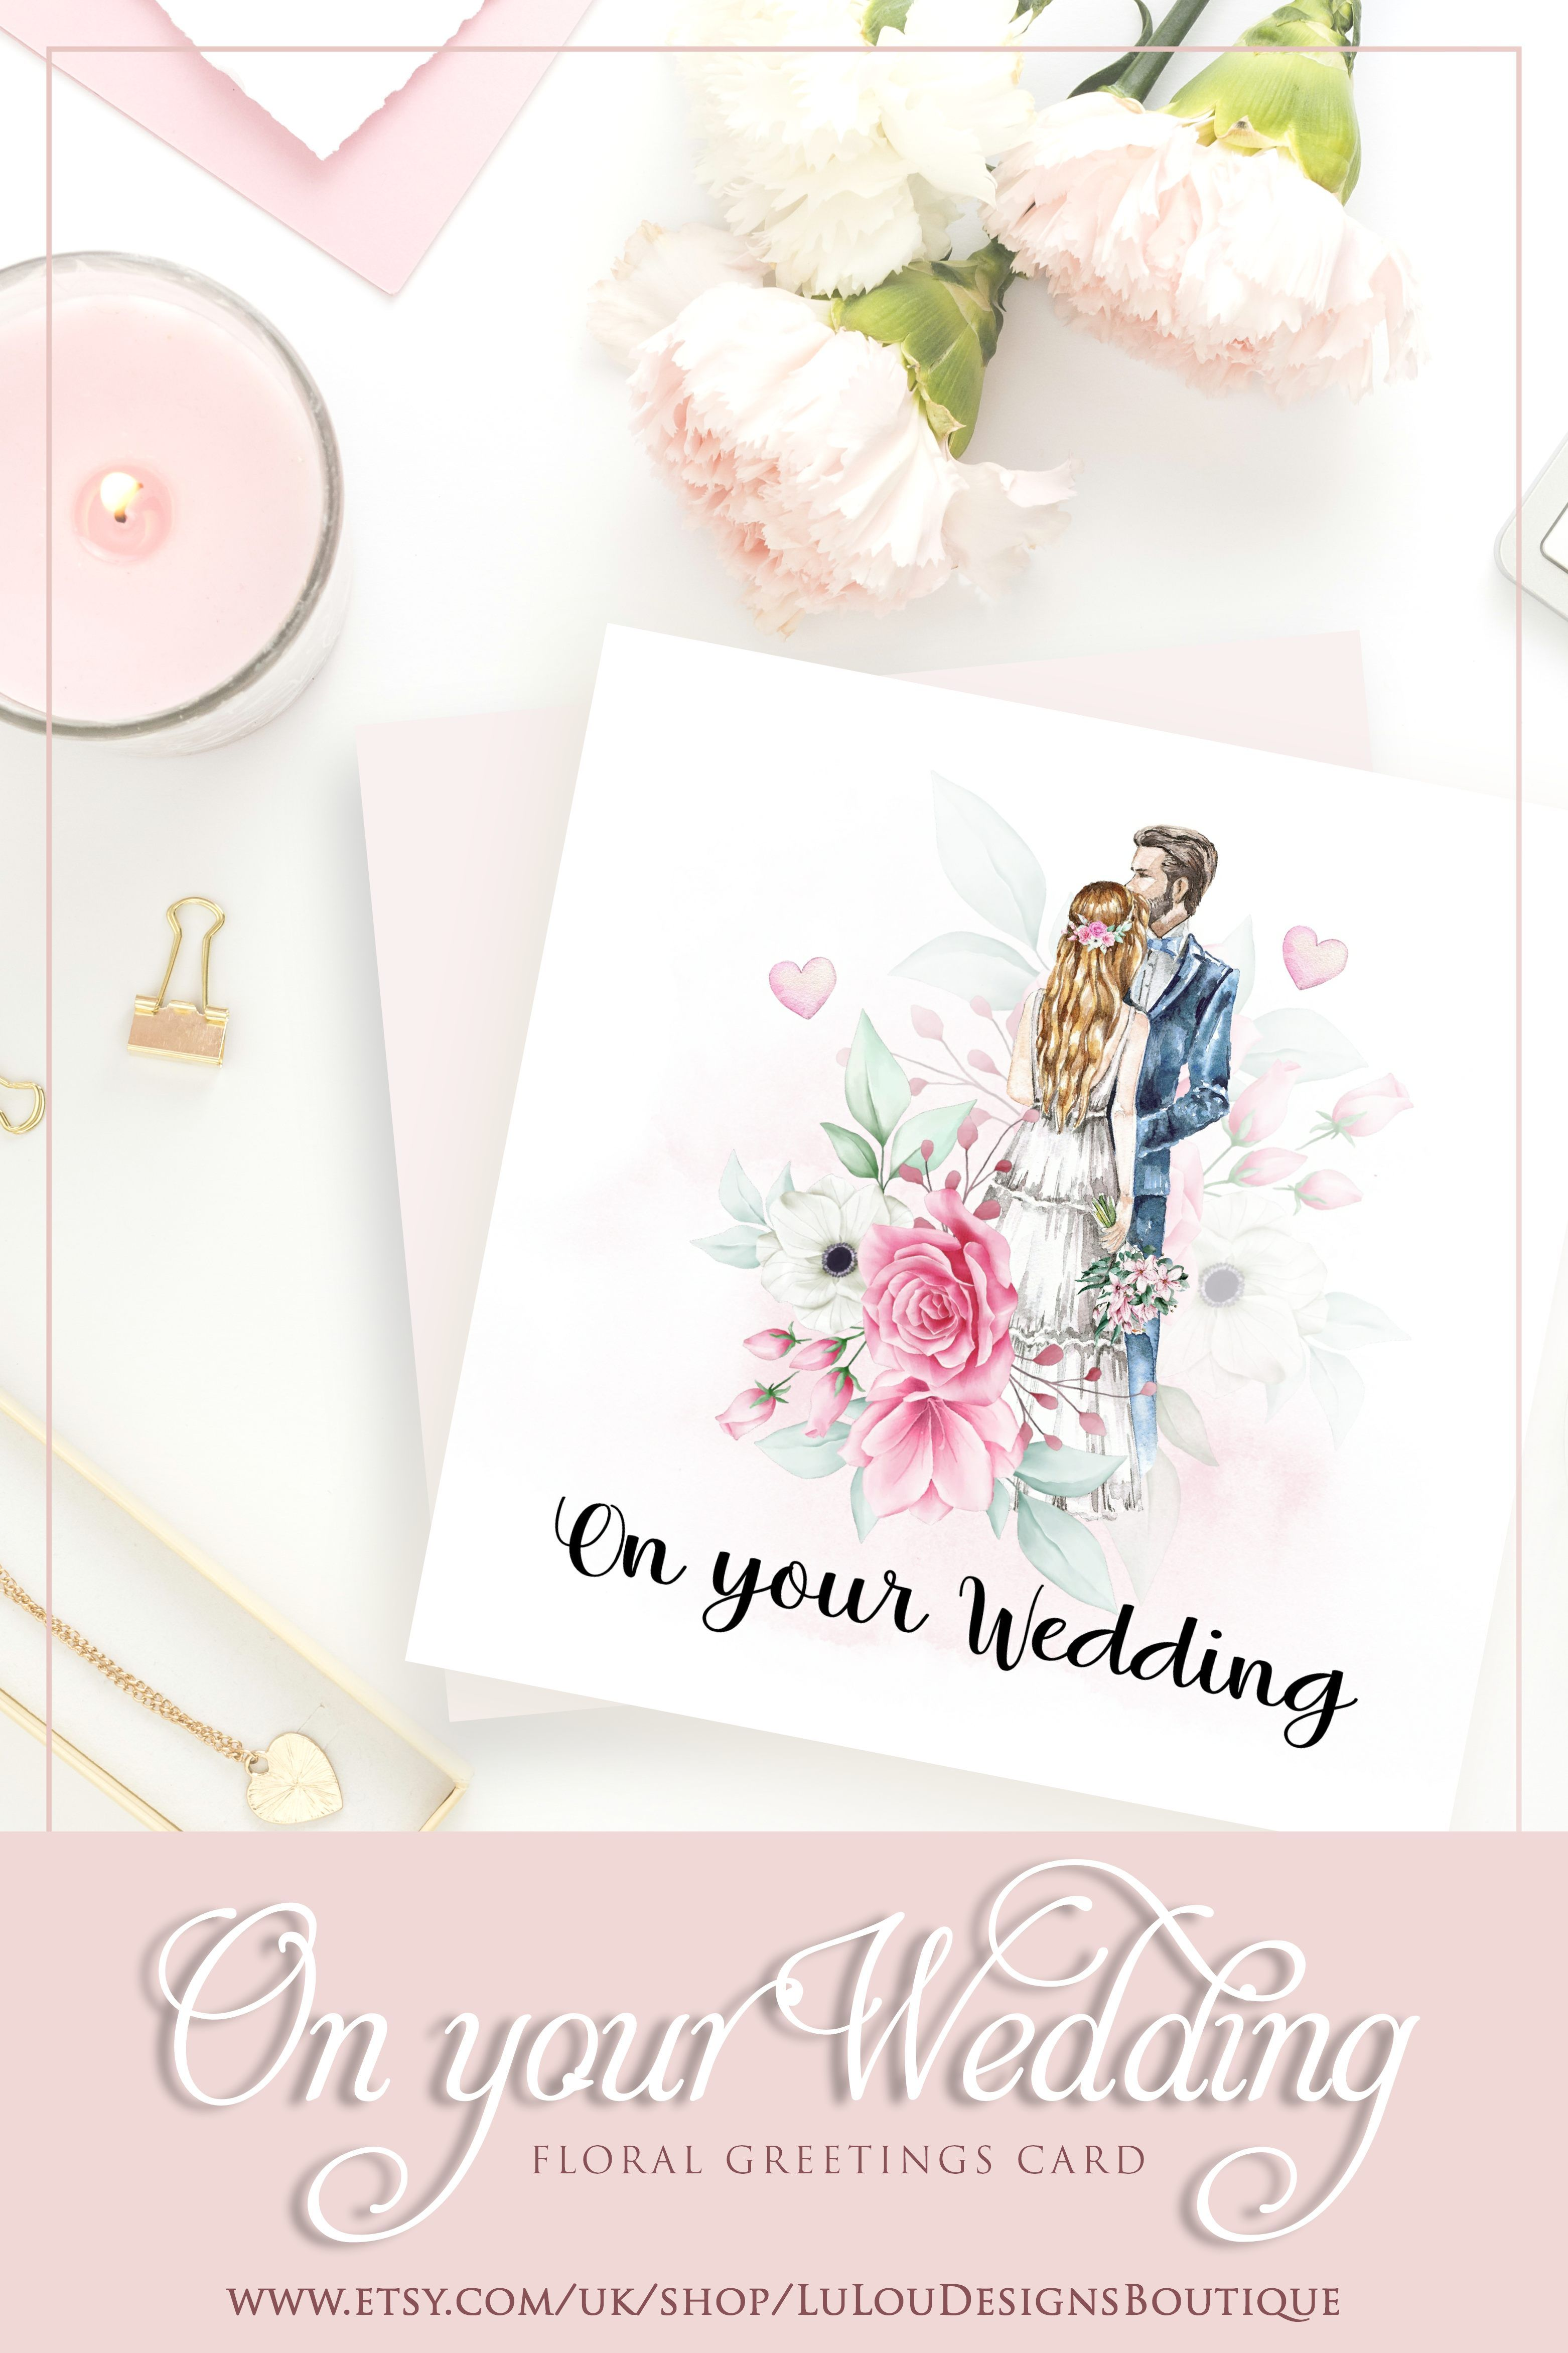 Wedding Gift Card With Watercolor Flowery Graphic And Couple Etsy In 2020 Wedding Gift Cards Wedding Cards Wedding Gifts